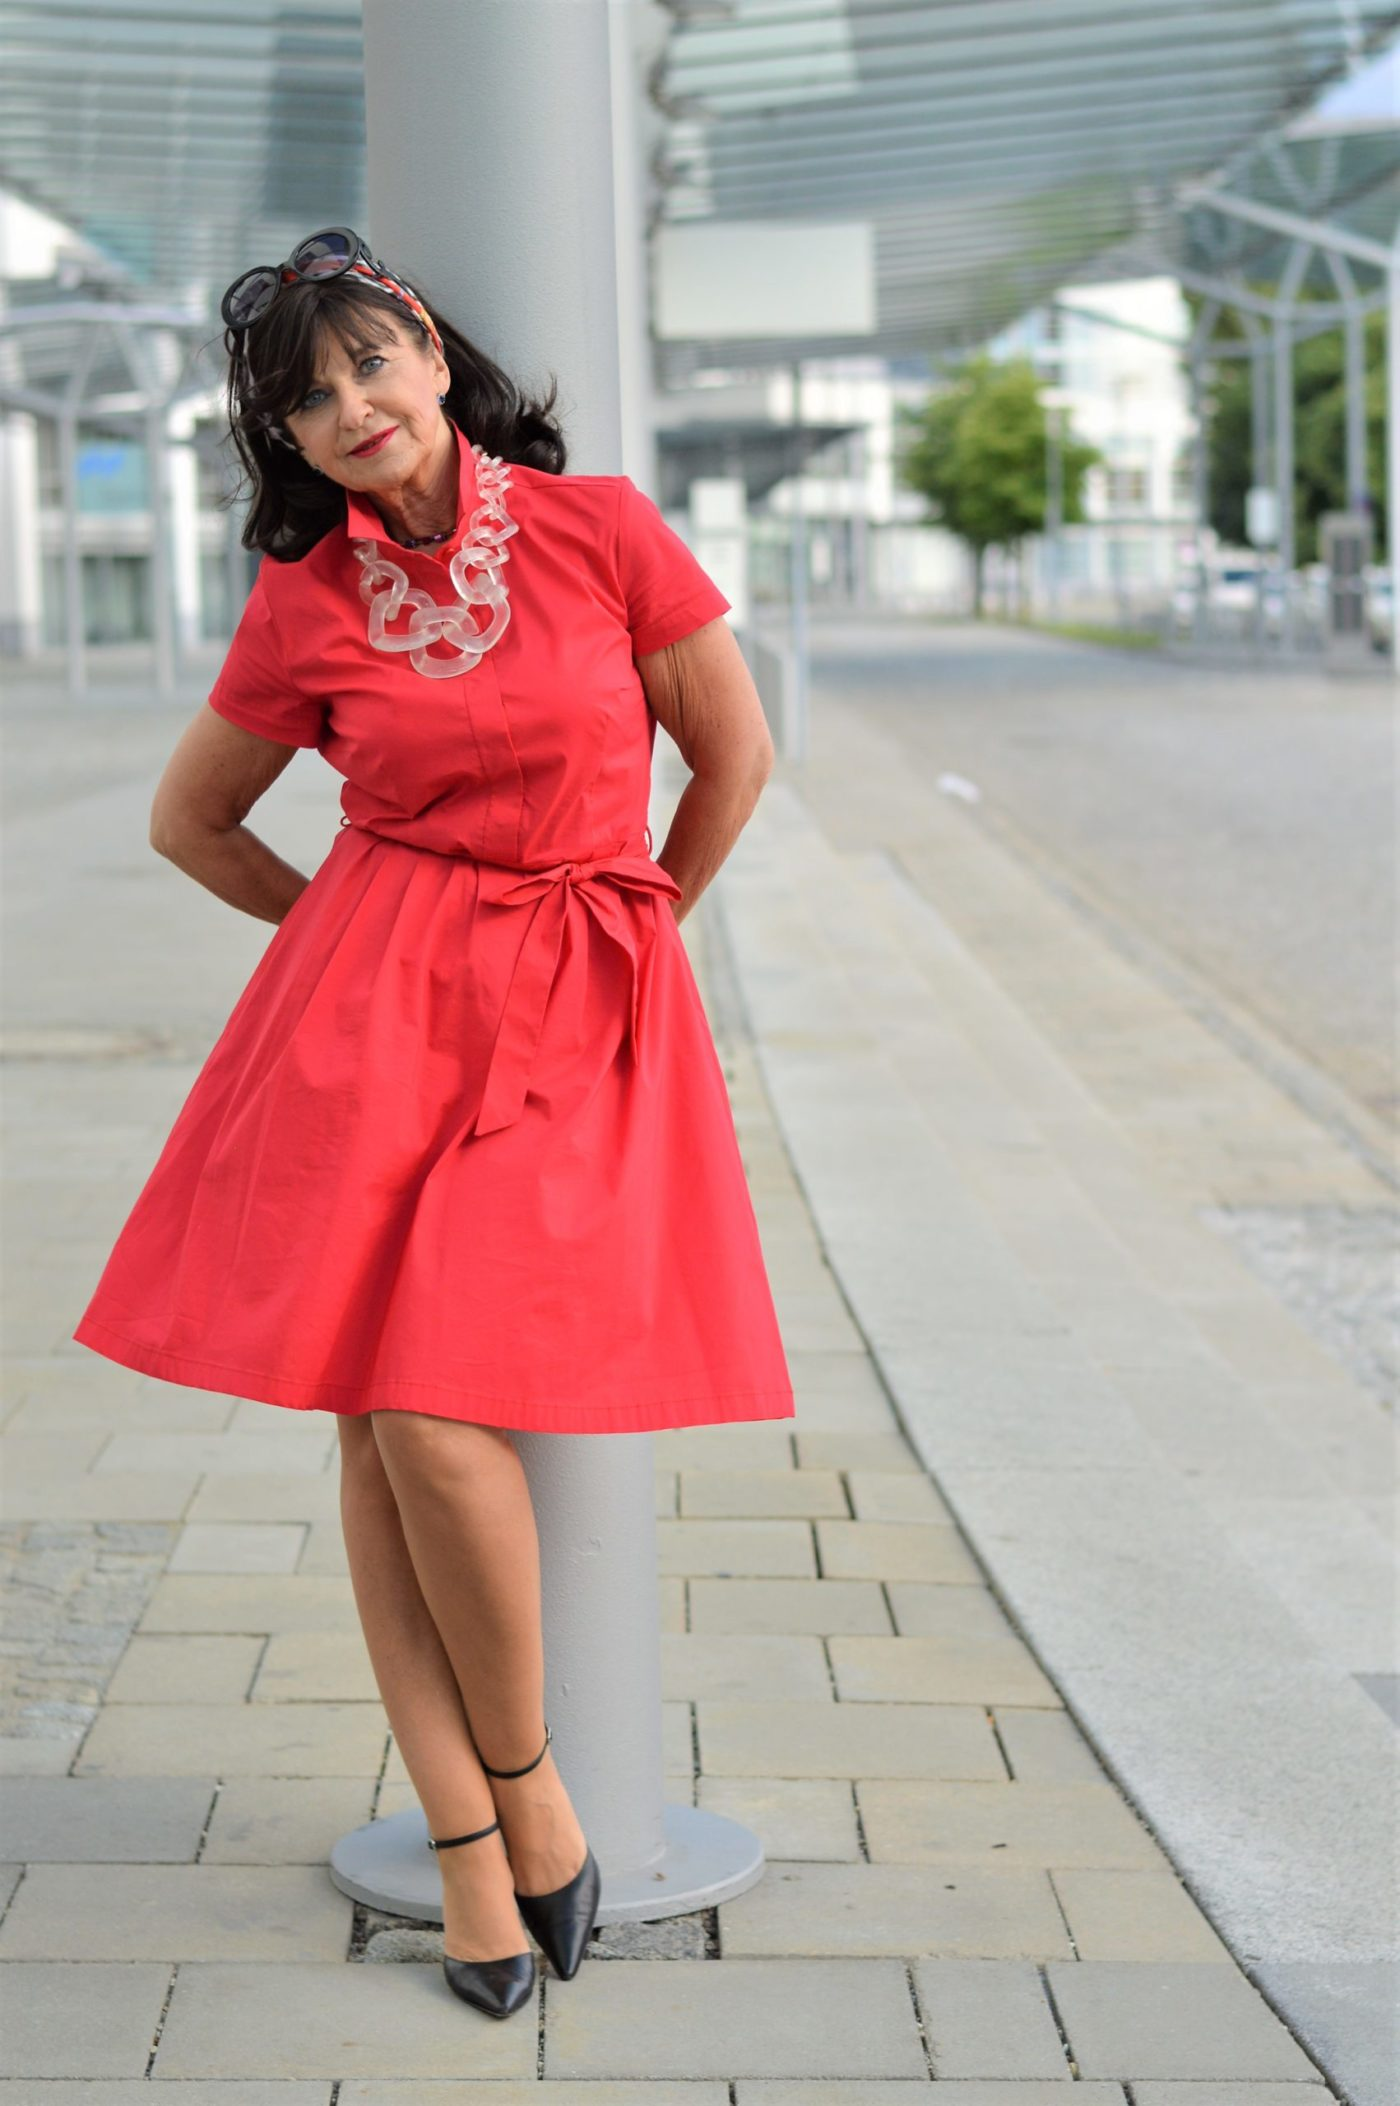 ein rotes kleid - lady in red - martina berg - lady 50plus